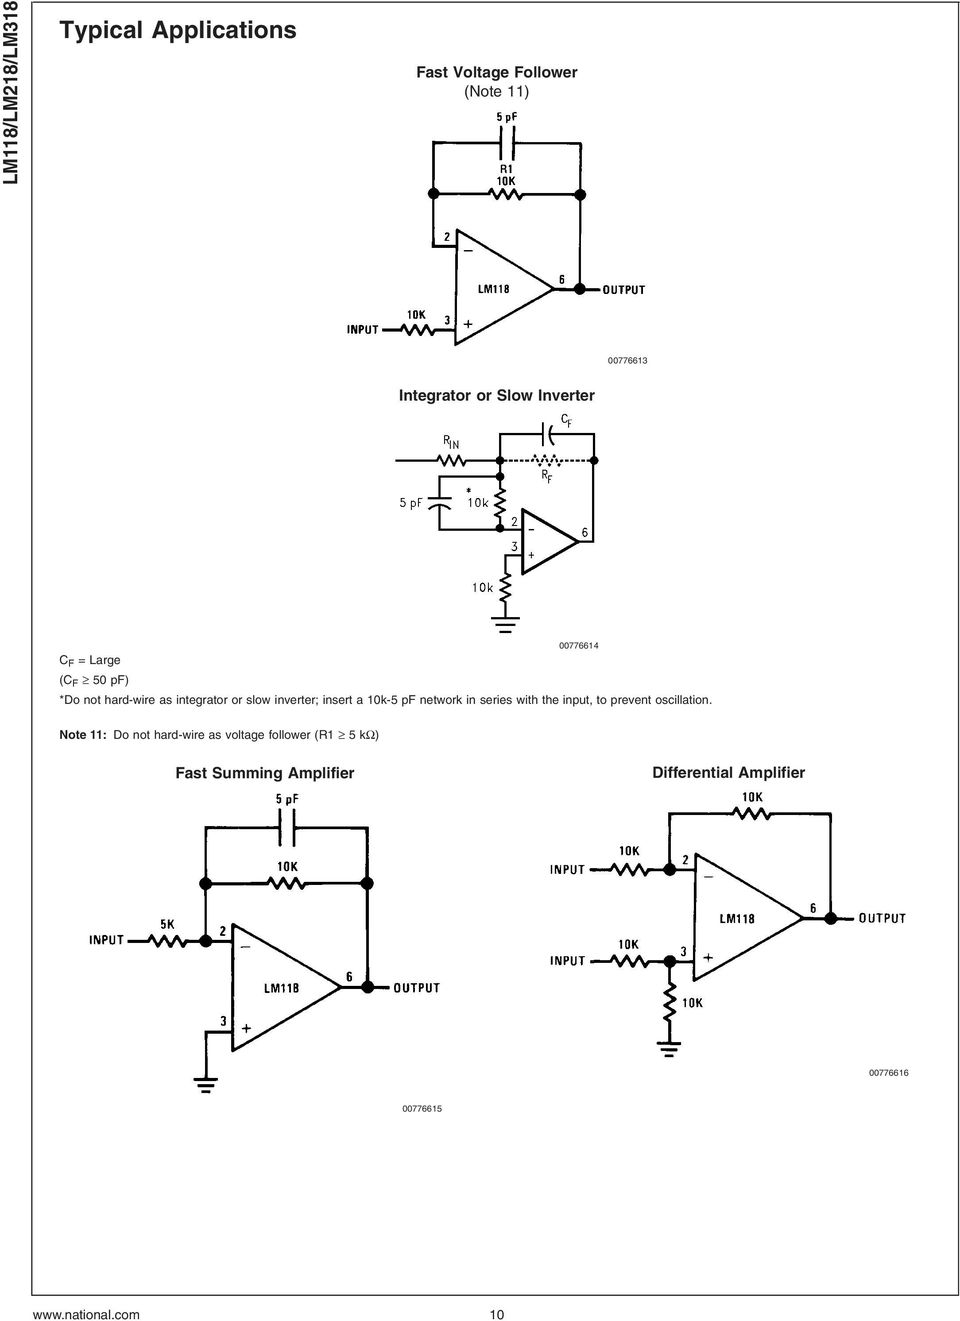 Lm118 Lm218 Lm318 Operational Amplifiers Pdf 741 Amplifier Circuit 10k 5 Pf Network In Series With The Input To Prevent Oscillation